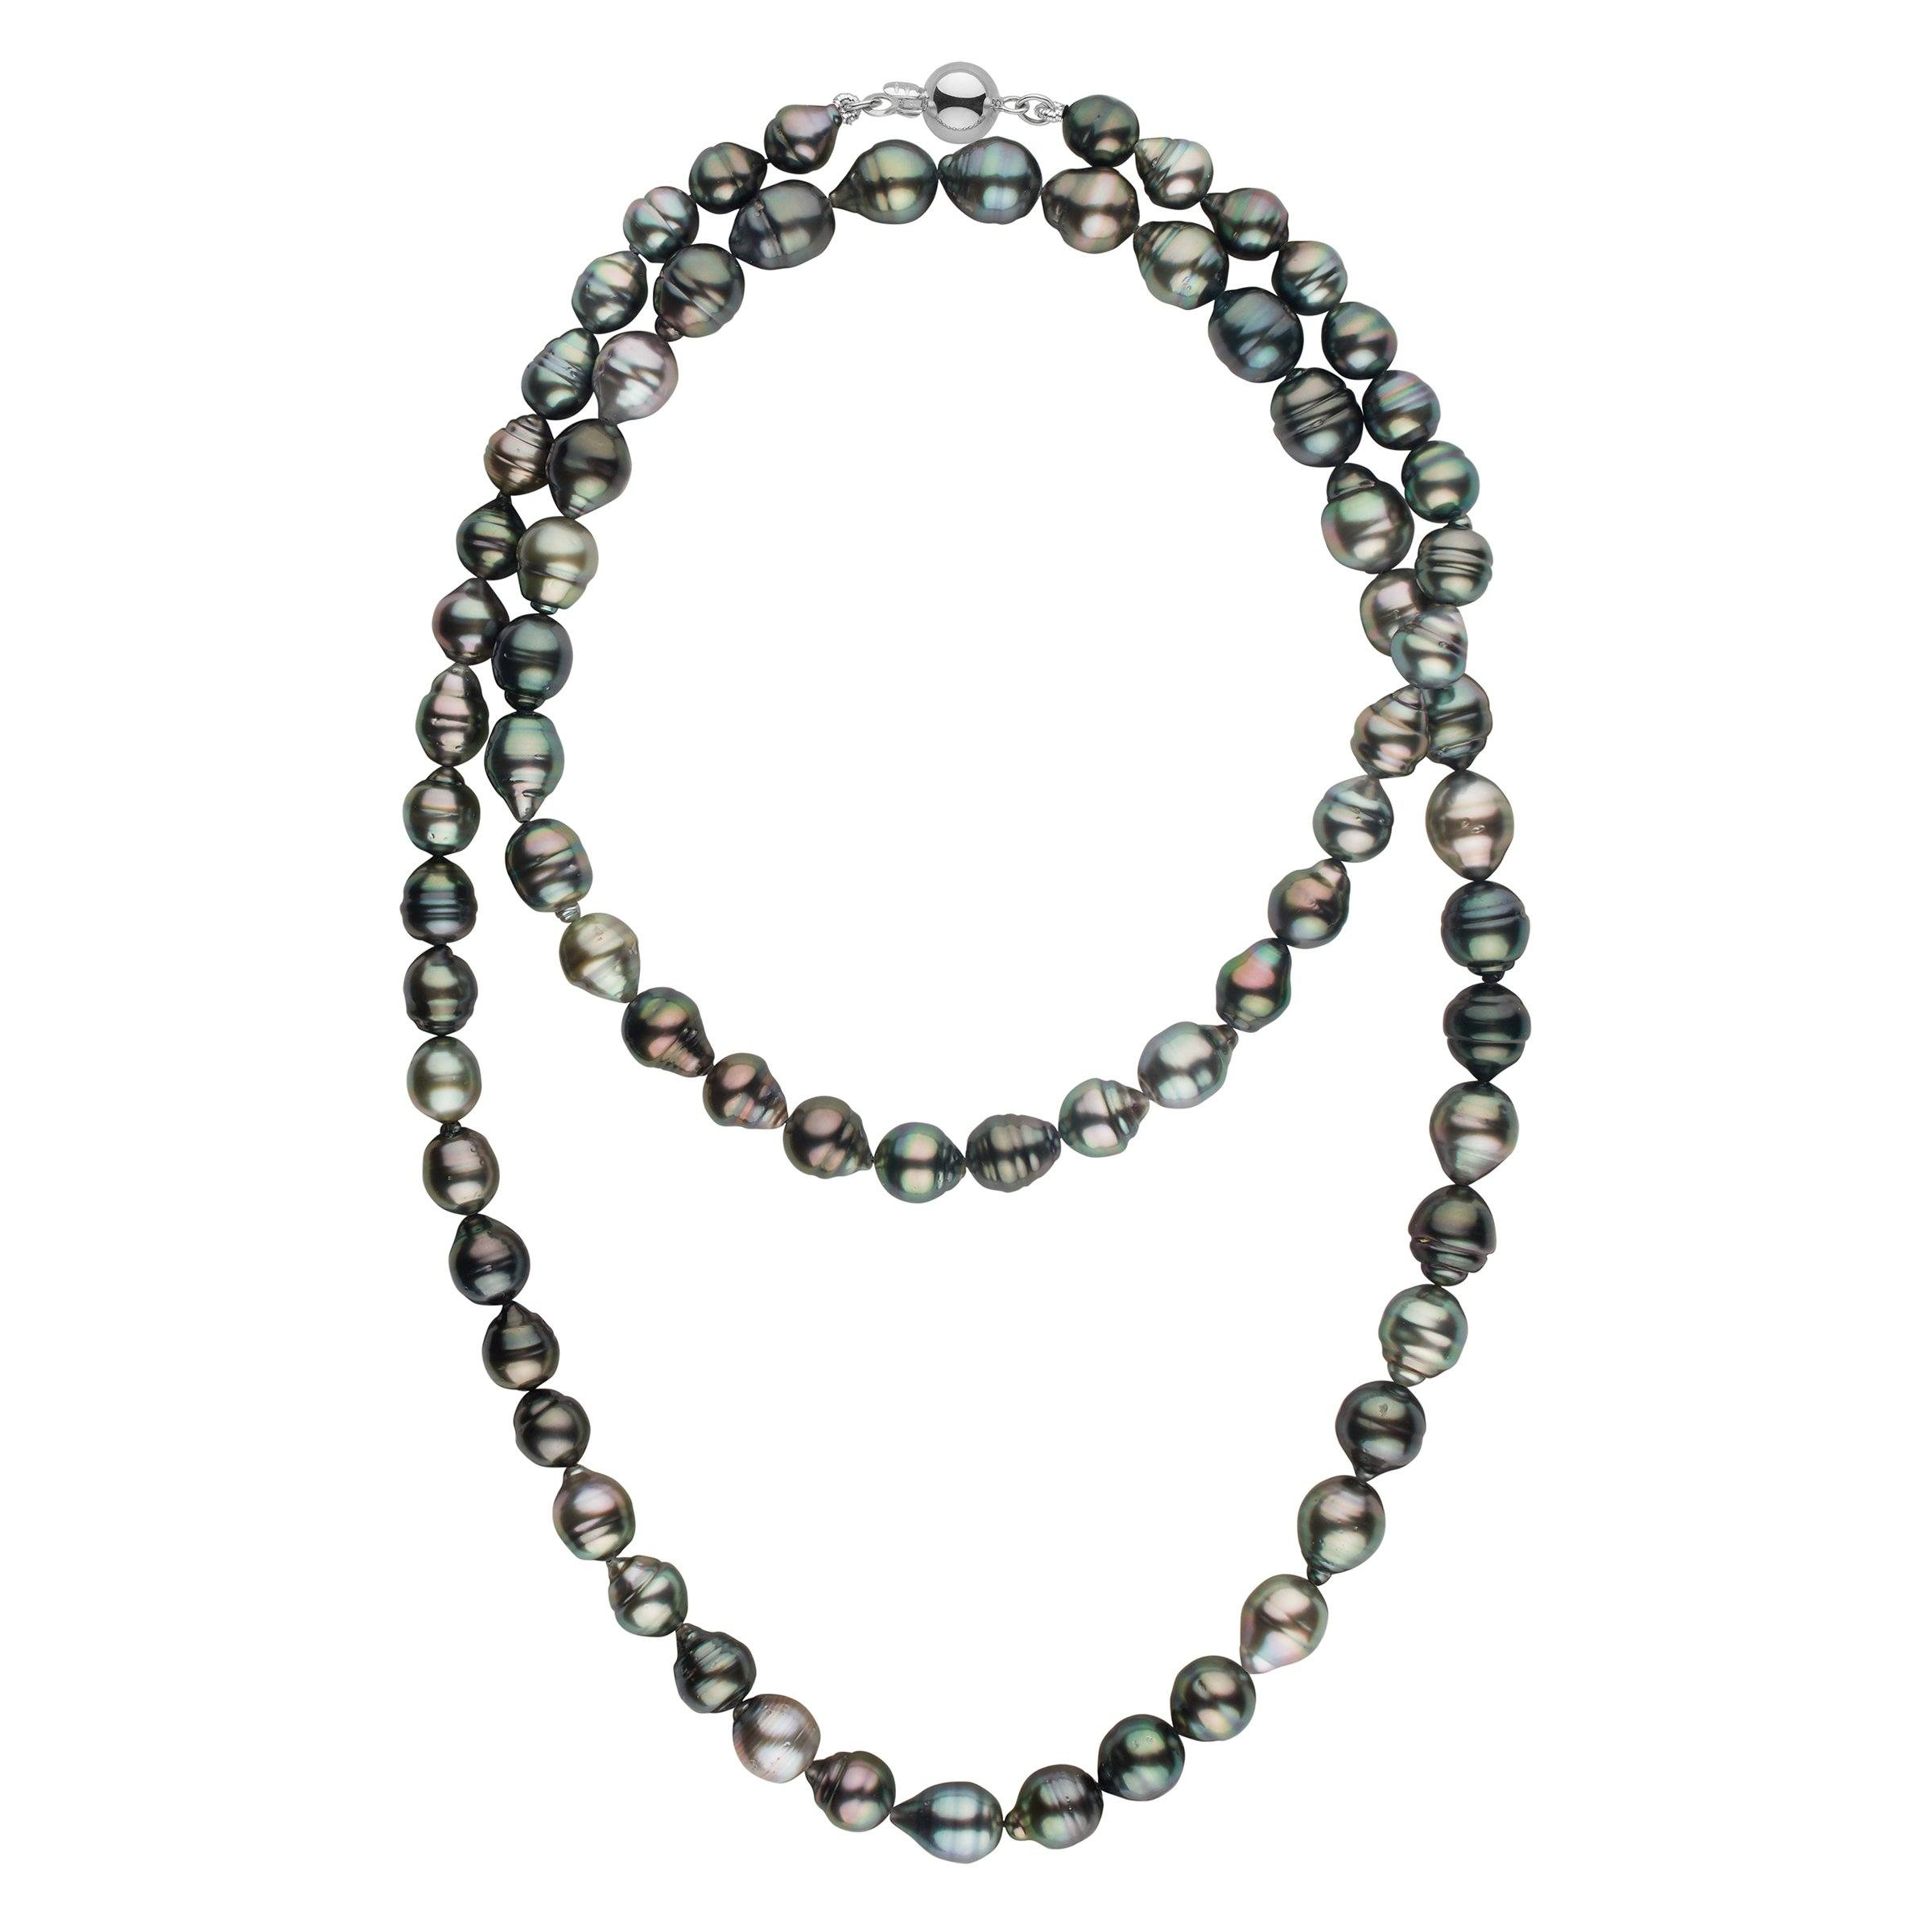 8.4-10.5 mm AA+/AAA Tahitian Baroque Pearl Necklace - 35 Inches